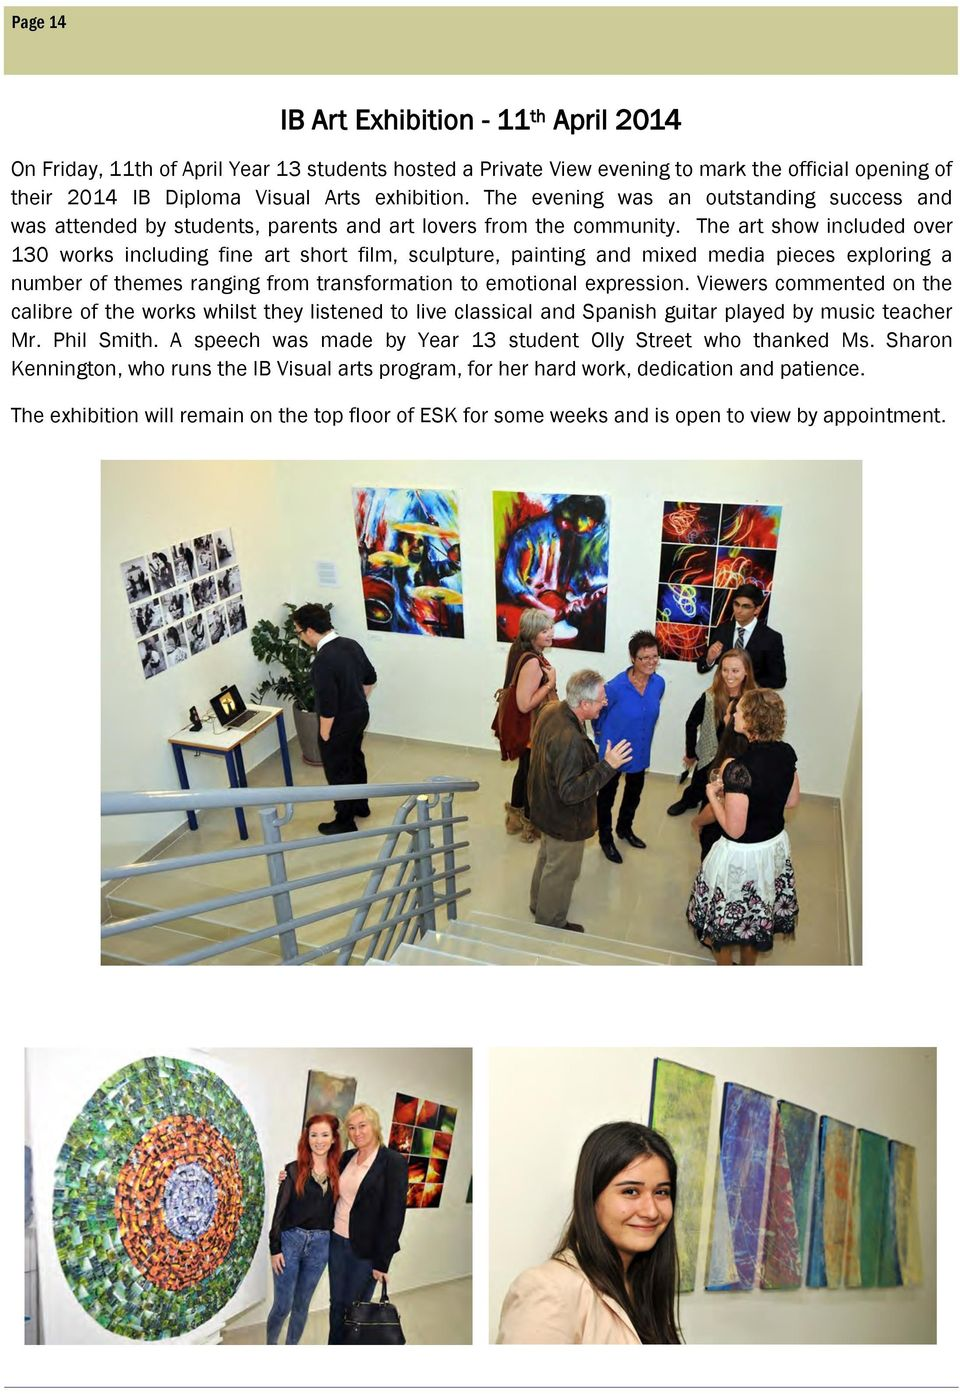 The art show included over 130 works including fine art short film, sculpture, painting and mixed media pieces exploring a number of themes ranging from transformation to emotional expression.